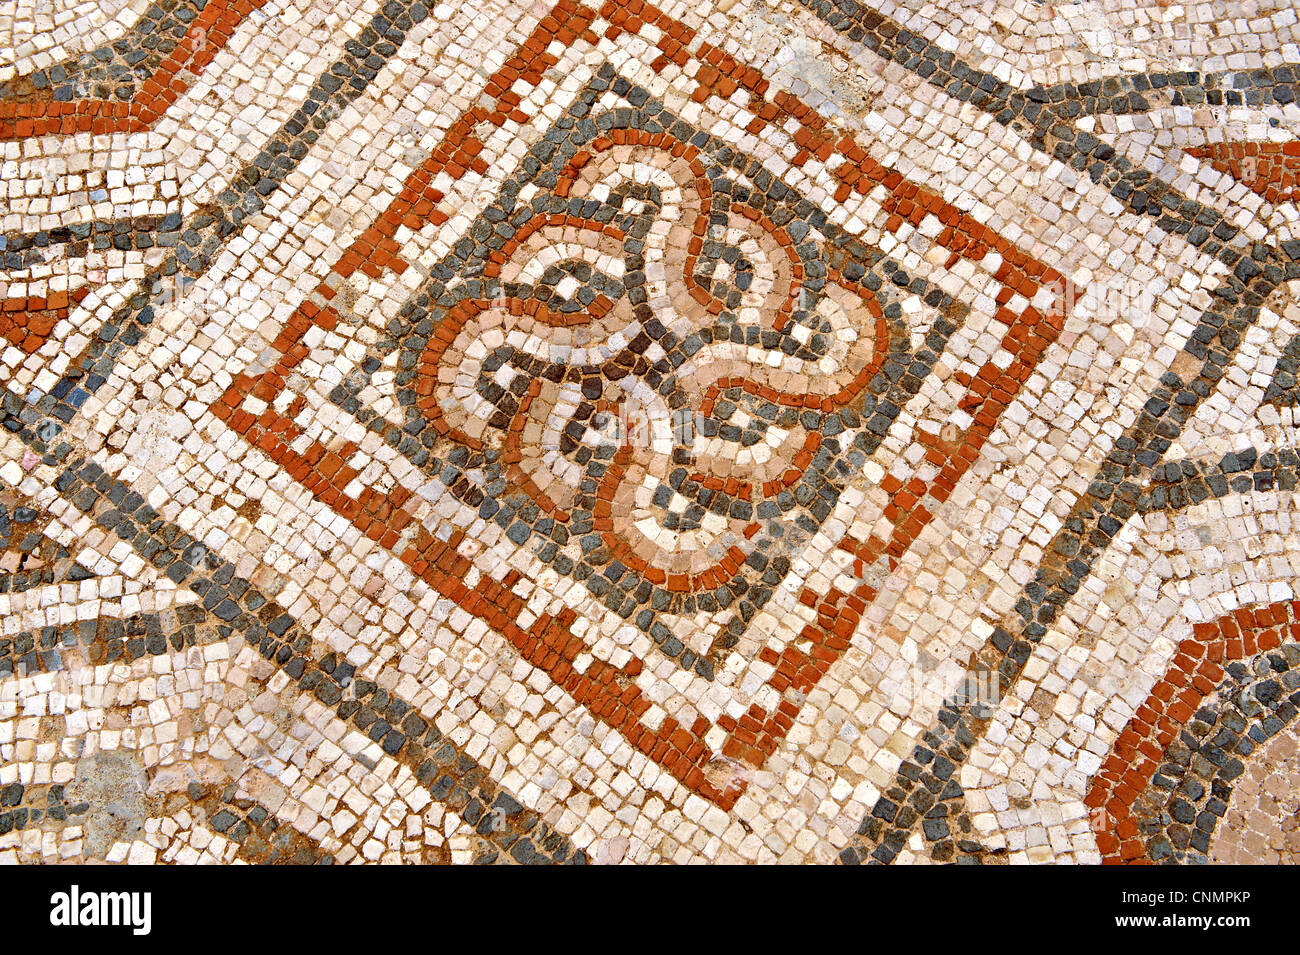 Second Century Roman Jewish mosaics from the Synagogue of Sardis. Sardis Archaeological Site, Turkey - Stock Image